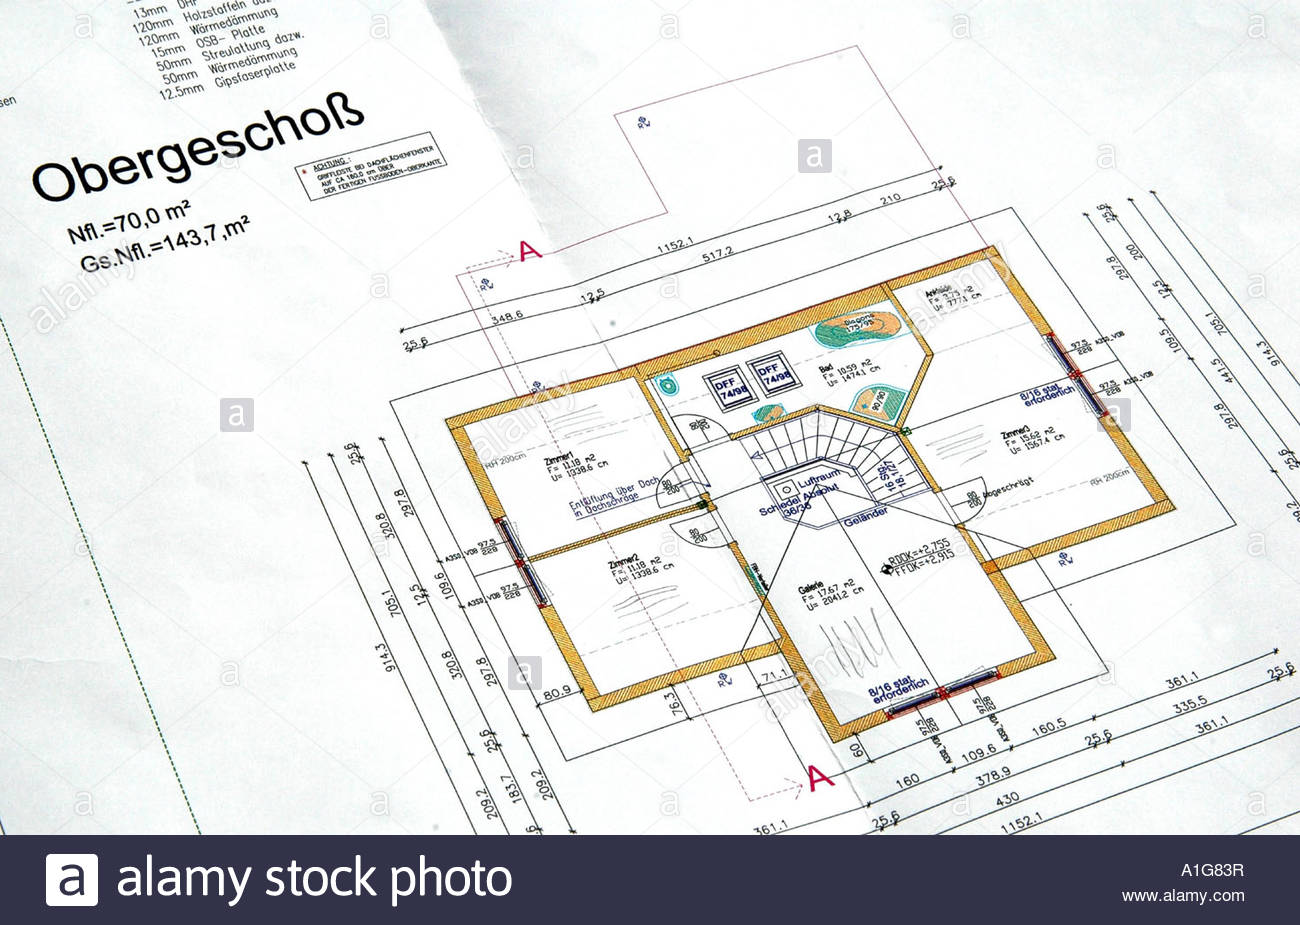 High Quality Grundriss Eines Hauses Hausplan Floor Plan Of A House   Stock Image